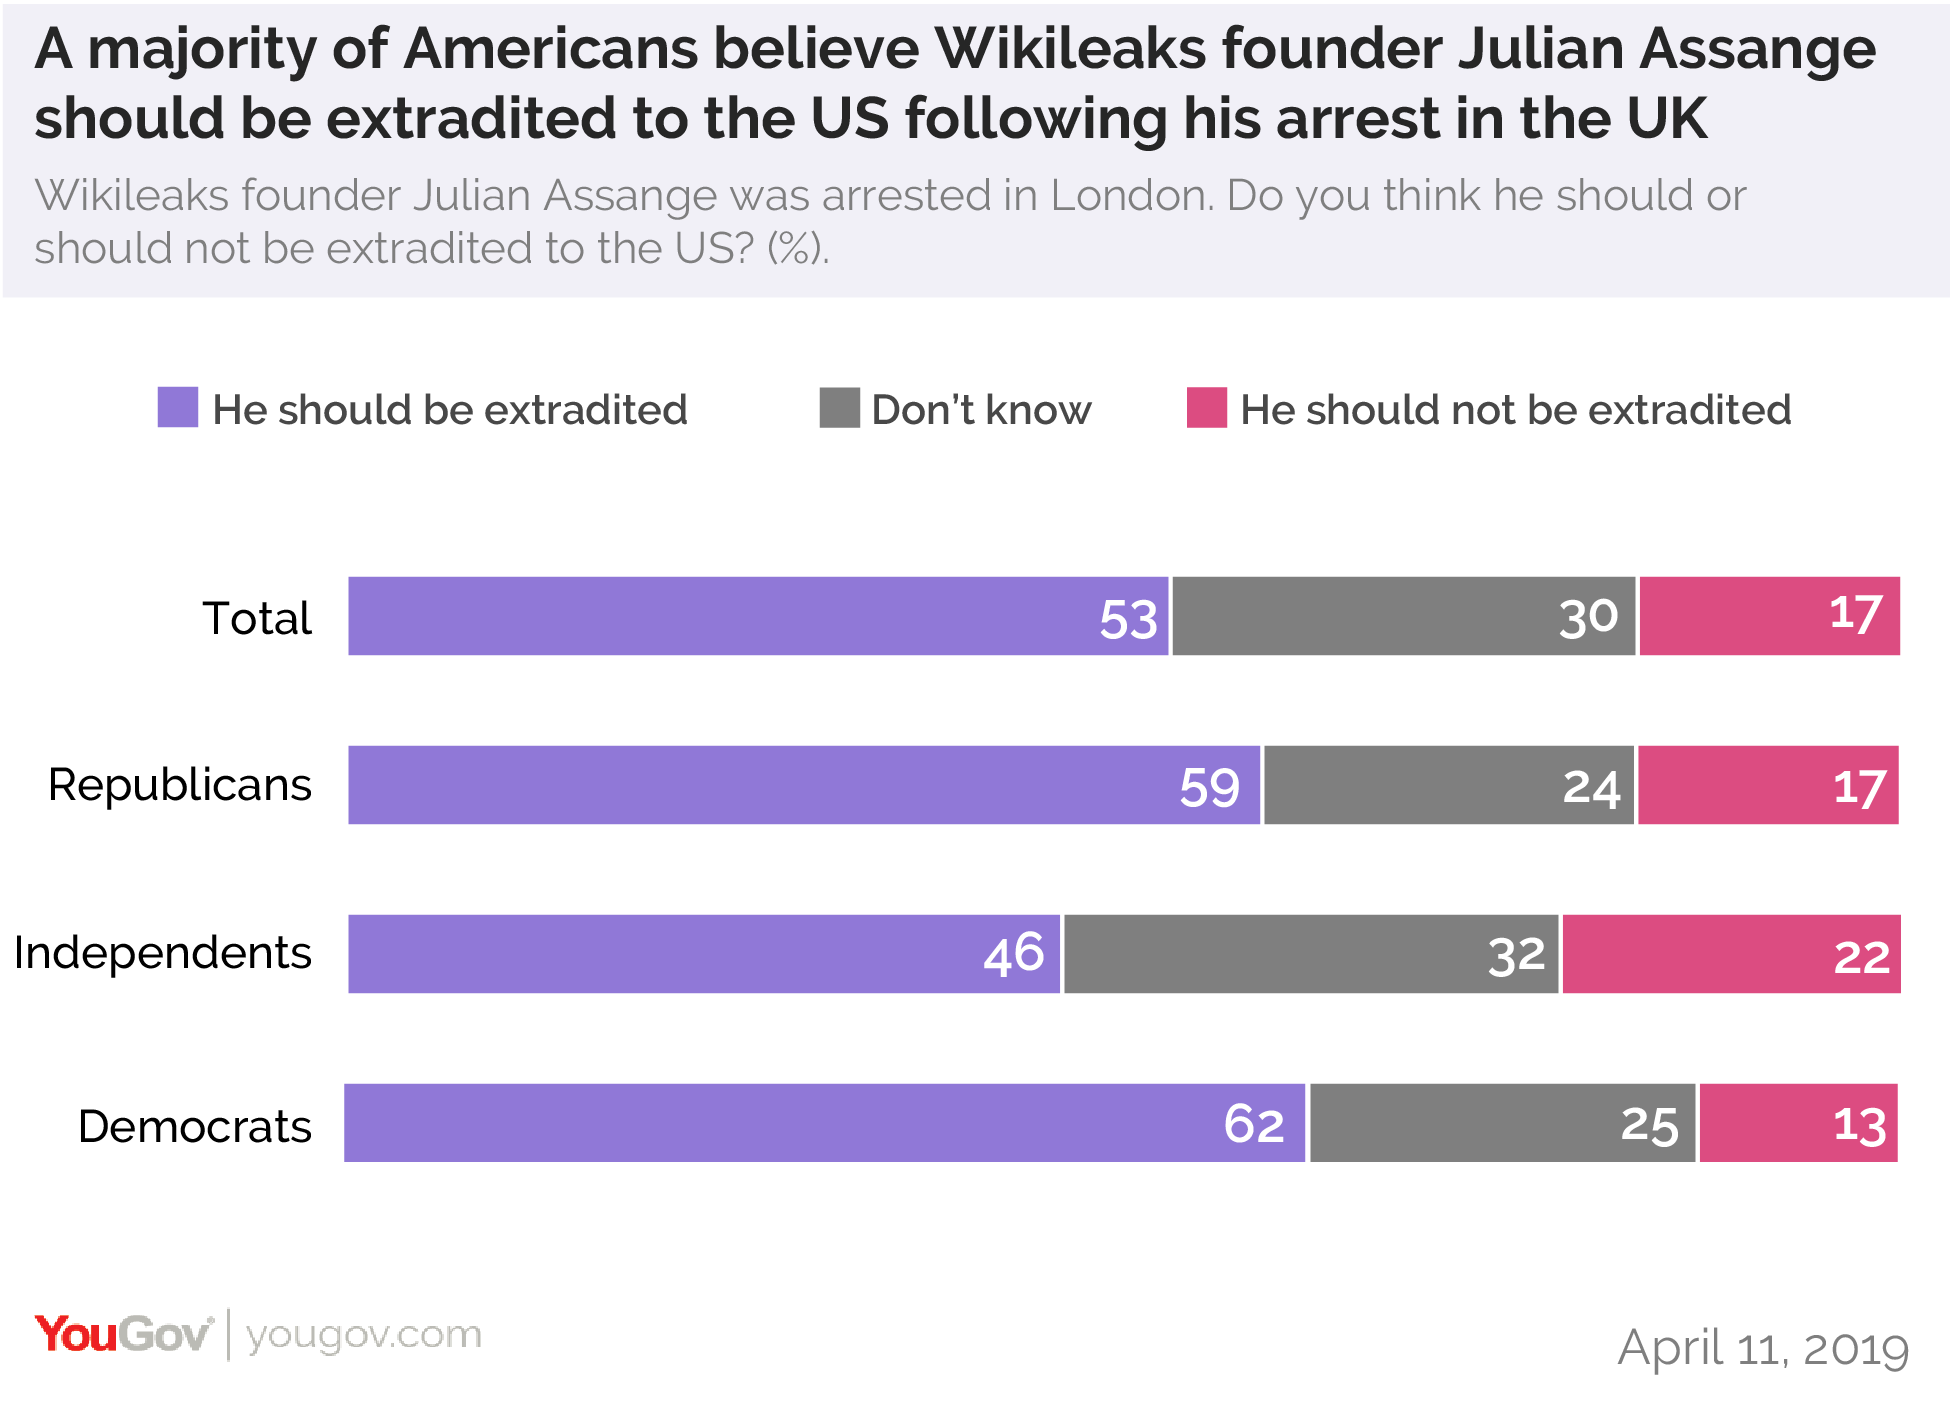 A majority of Americans believe Wikileaks founder Julian Assange should be extradited to the US following his arrest